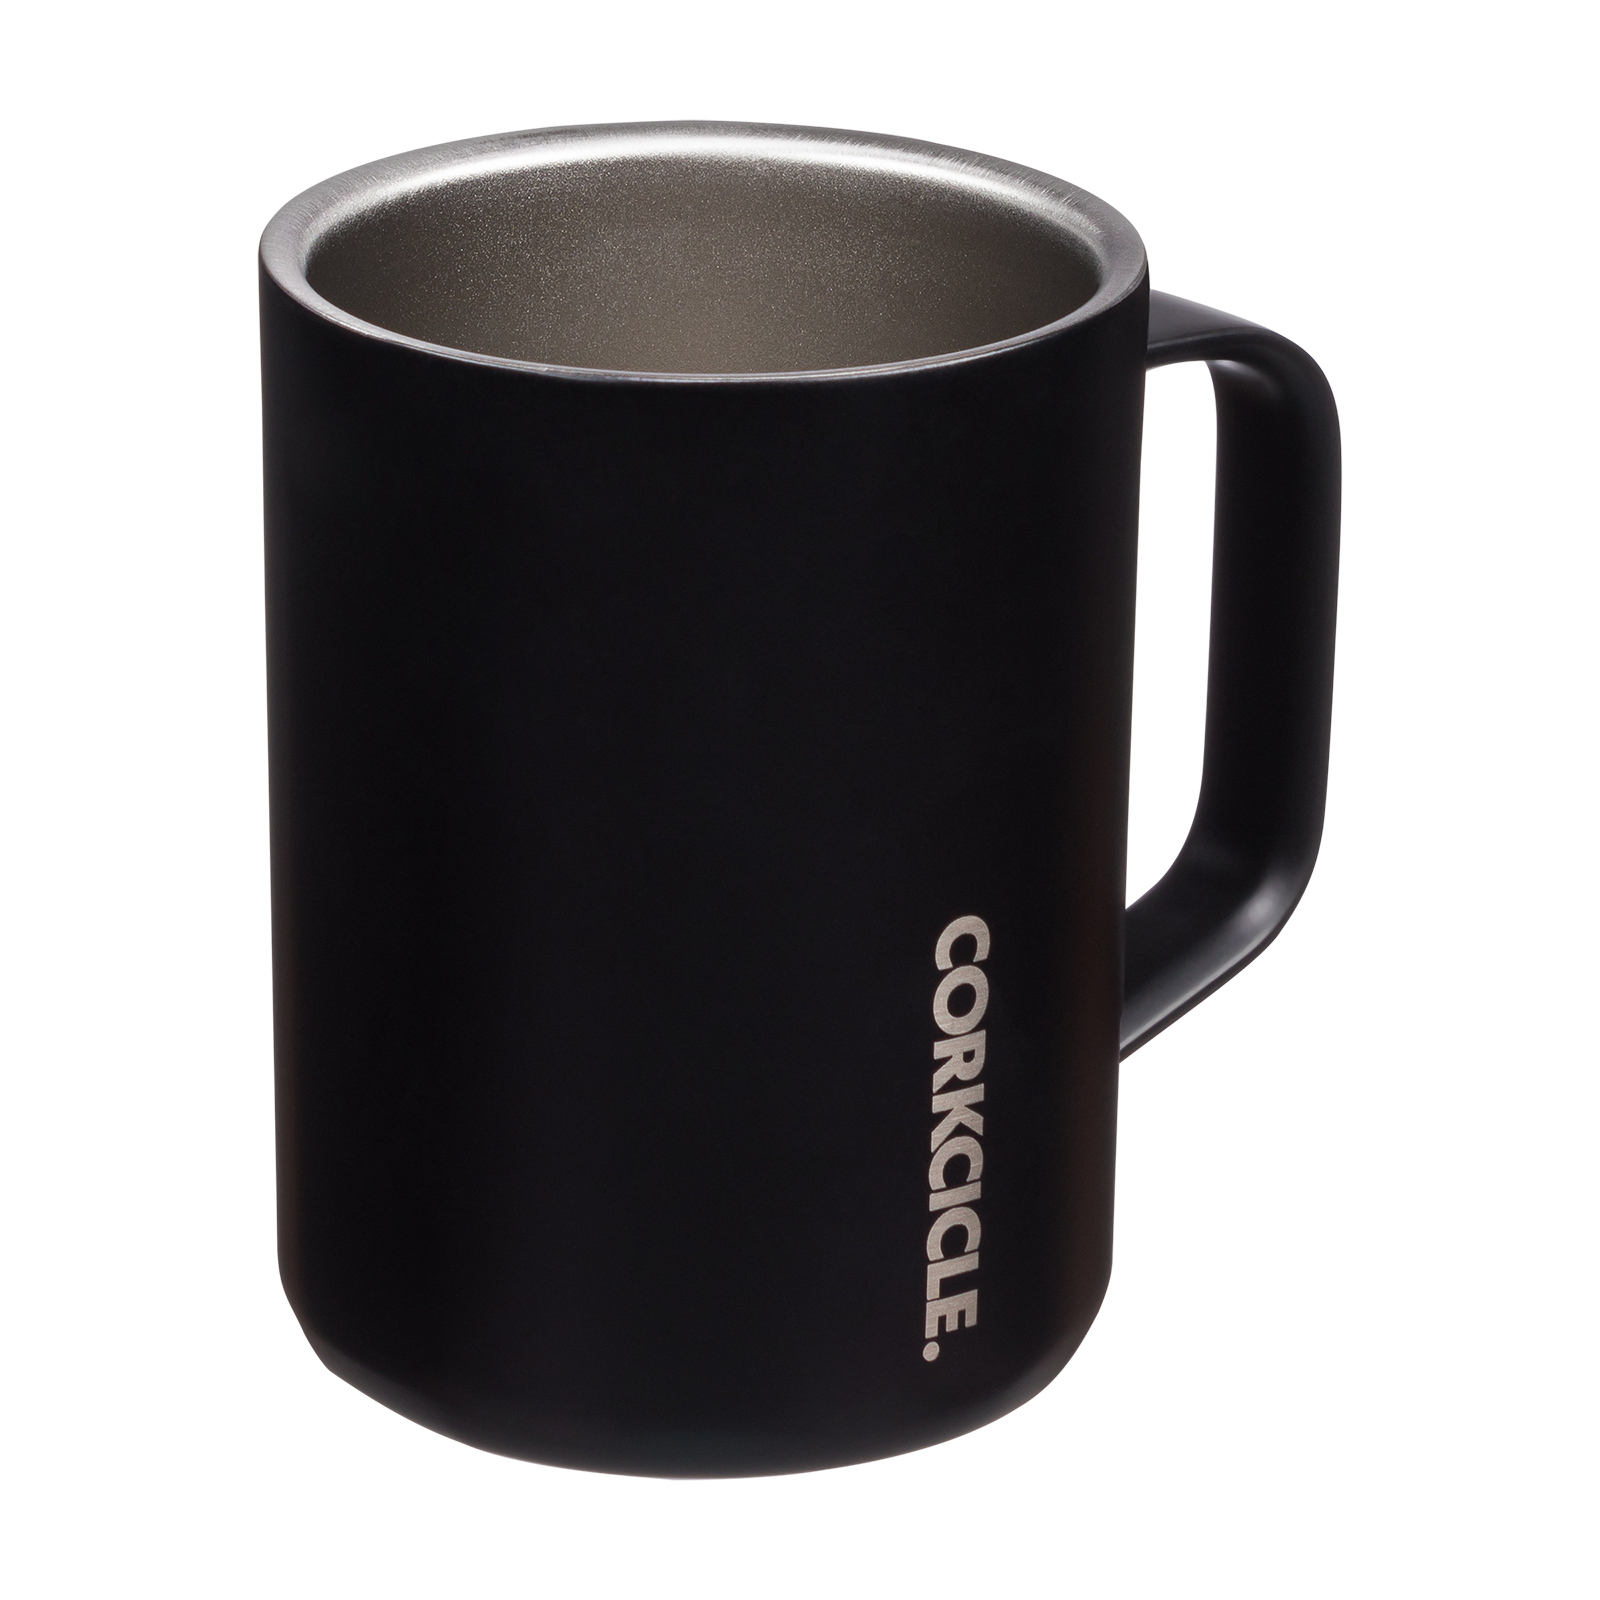 Thermo mug product photography